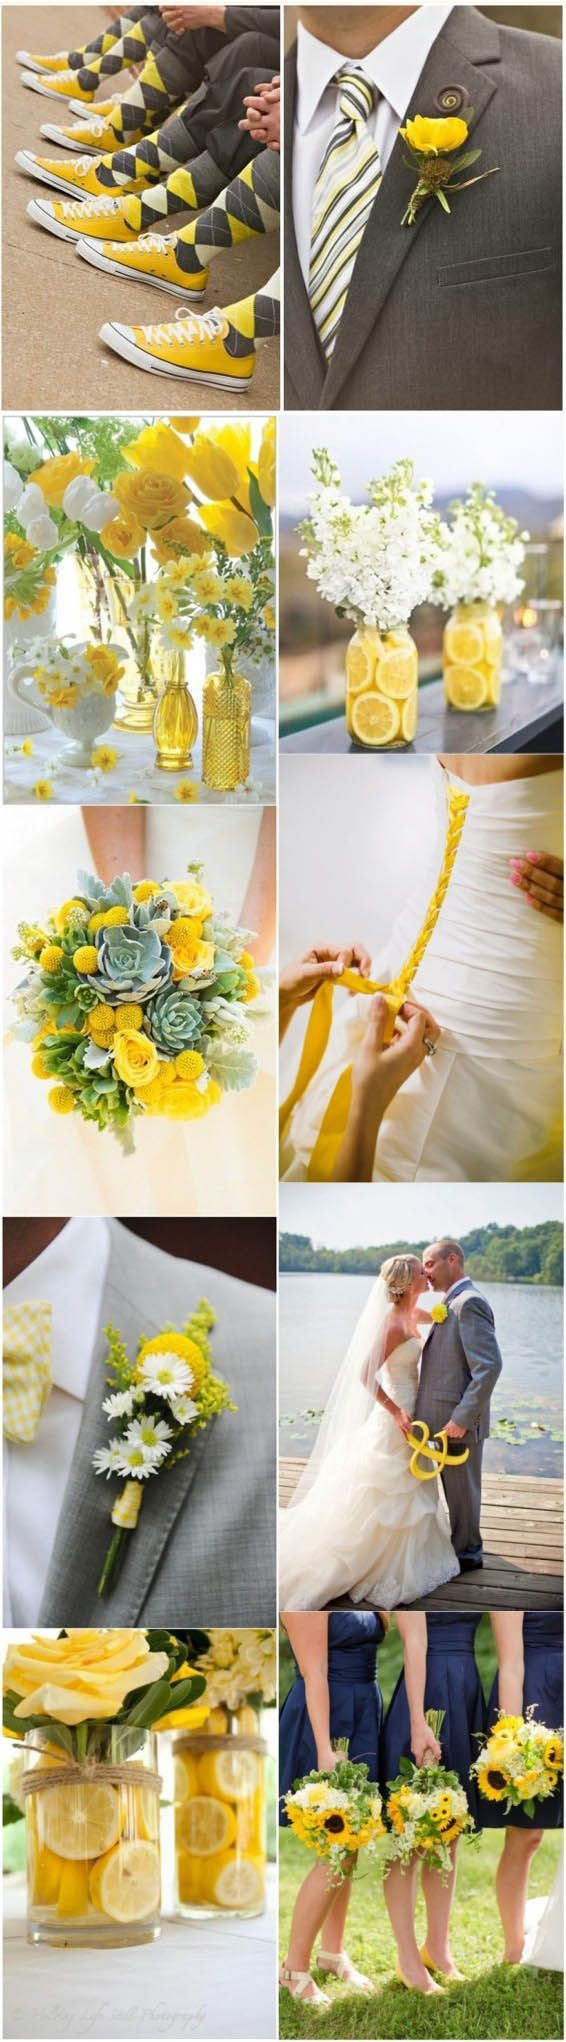 best June  images on Pinterest  Sunflowers Weddings and